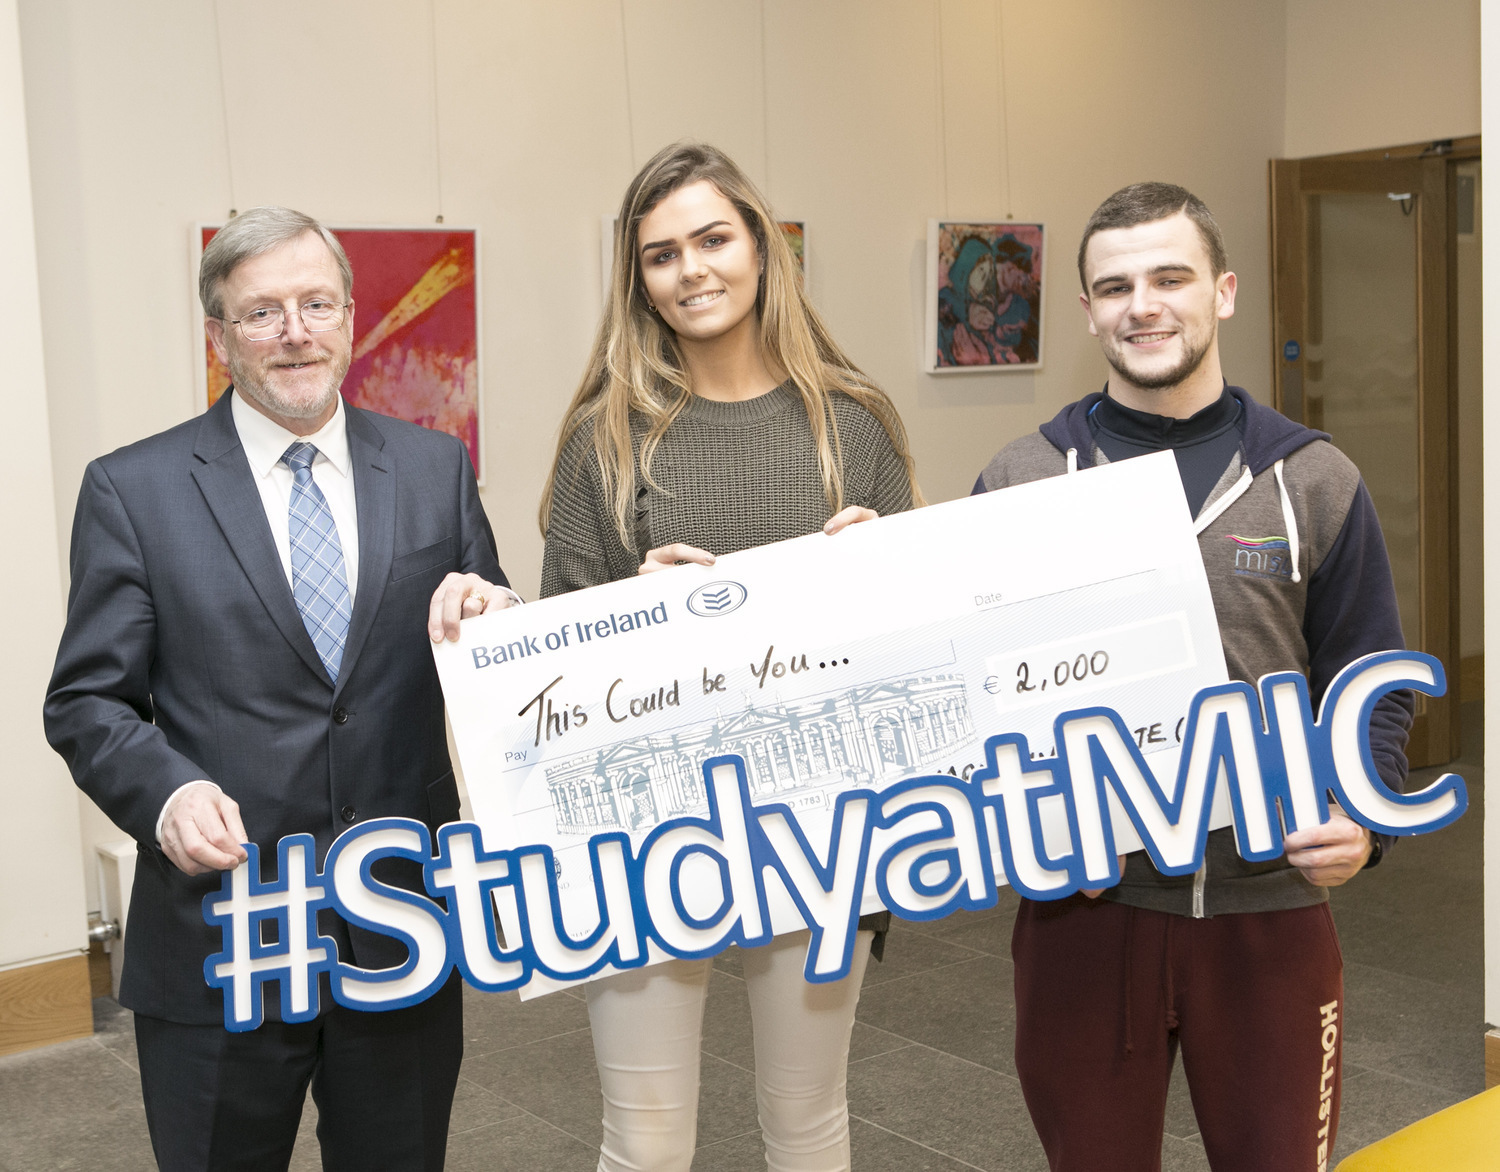 Mary Immaculate College 100,000 Euro scholarship